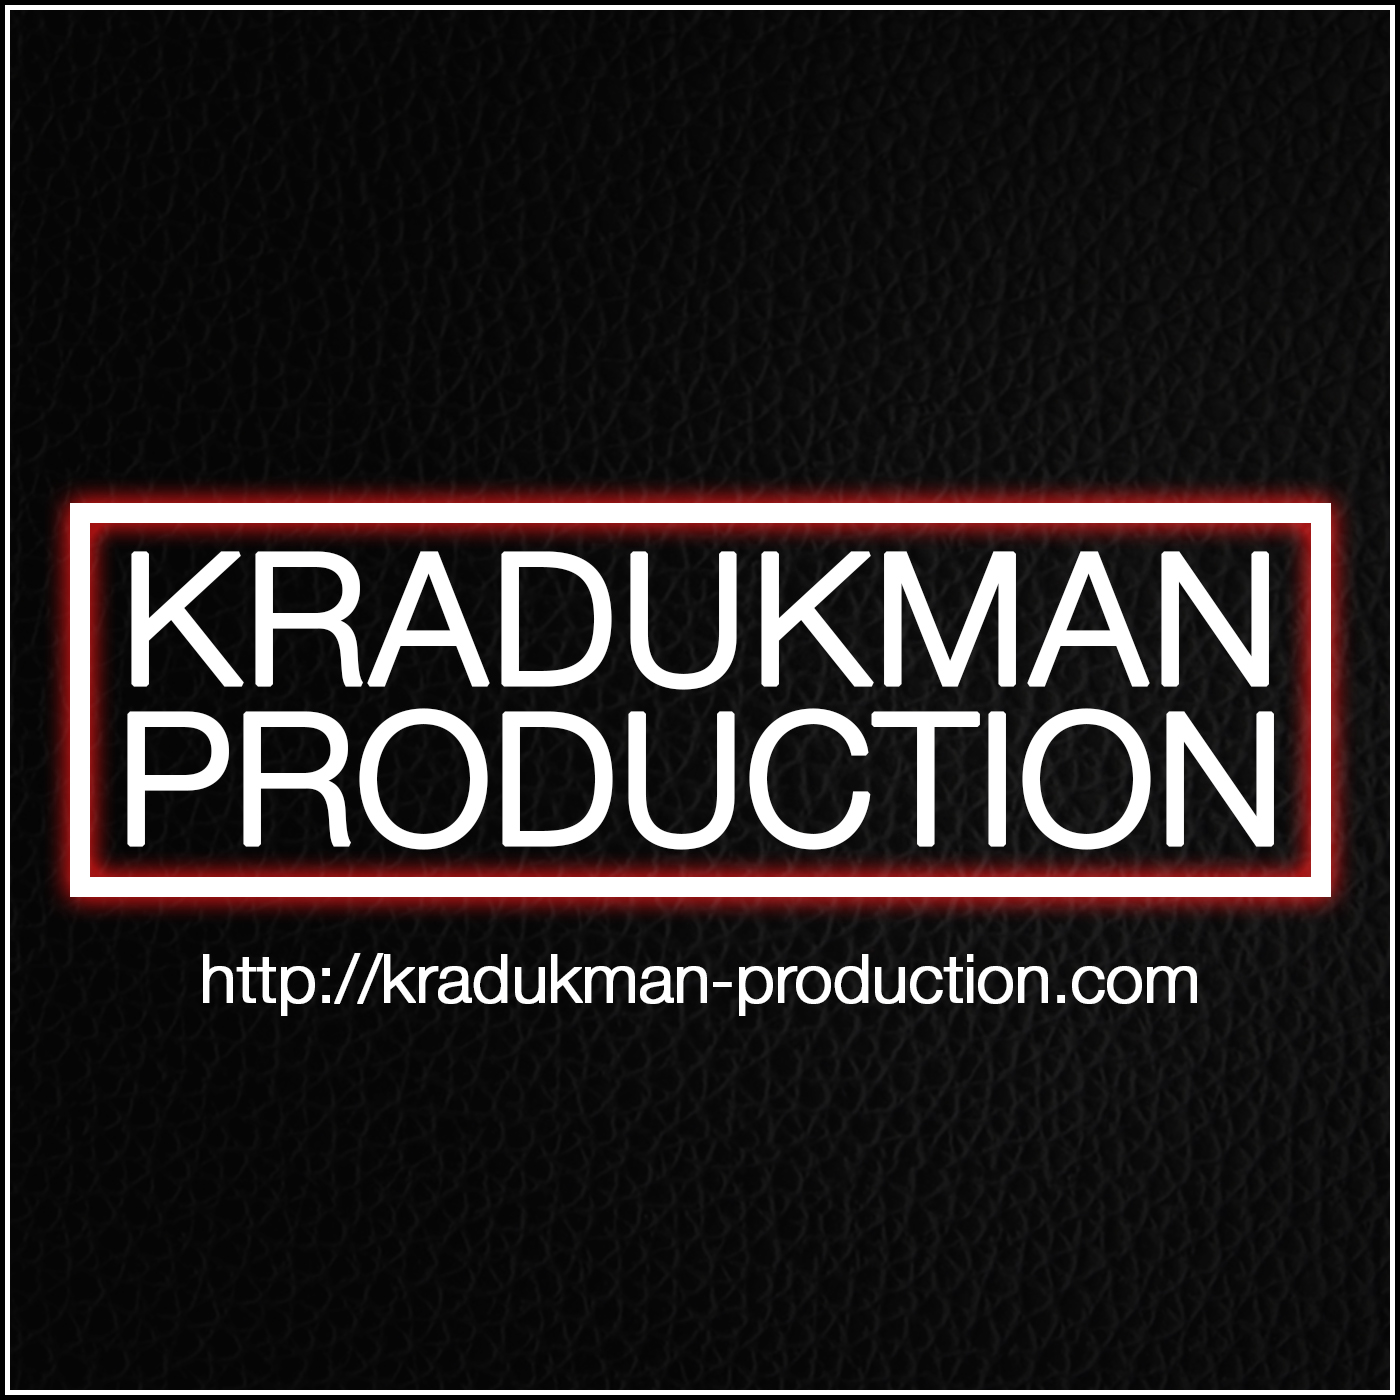 Kradukman Production